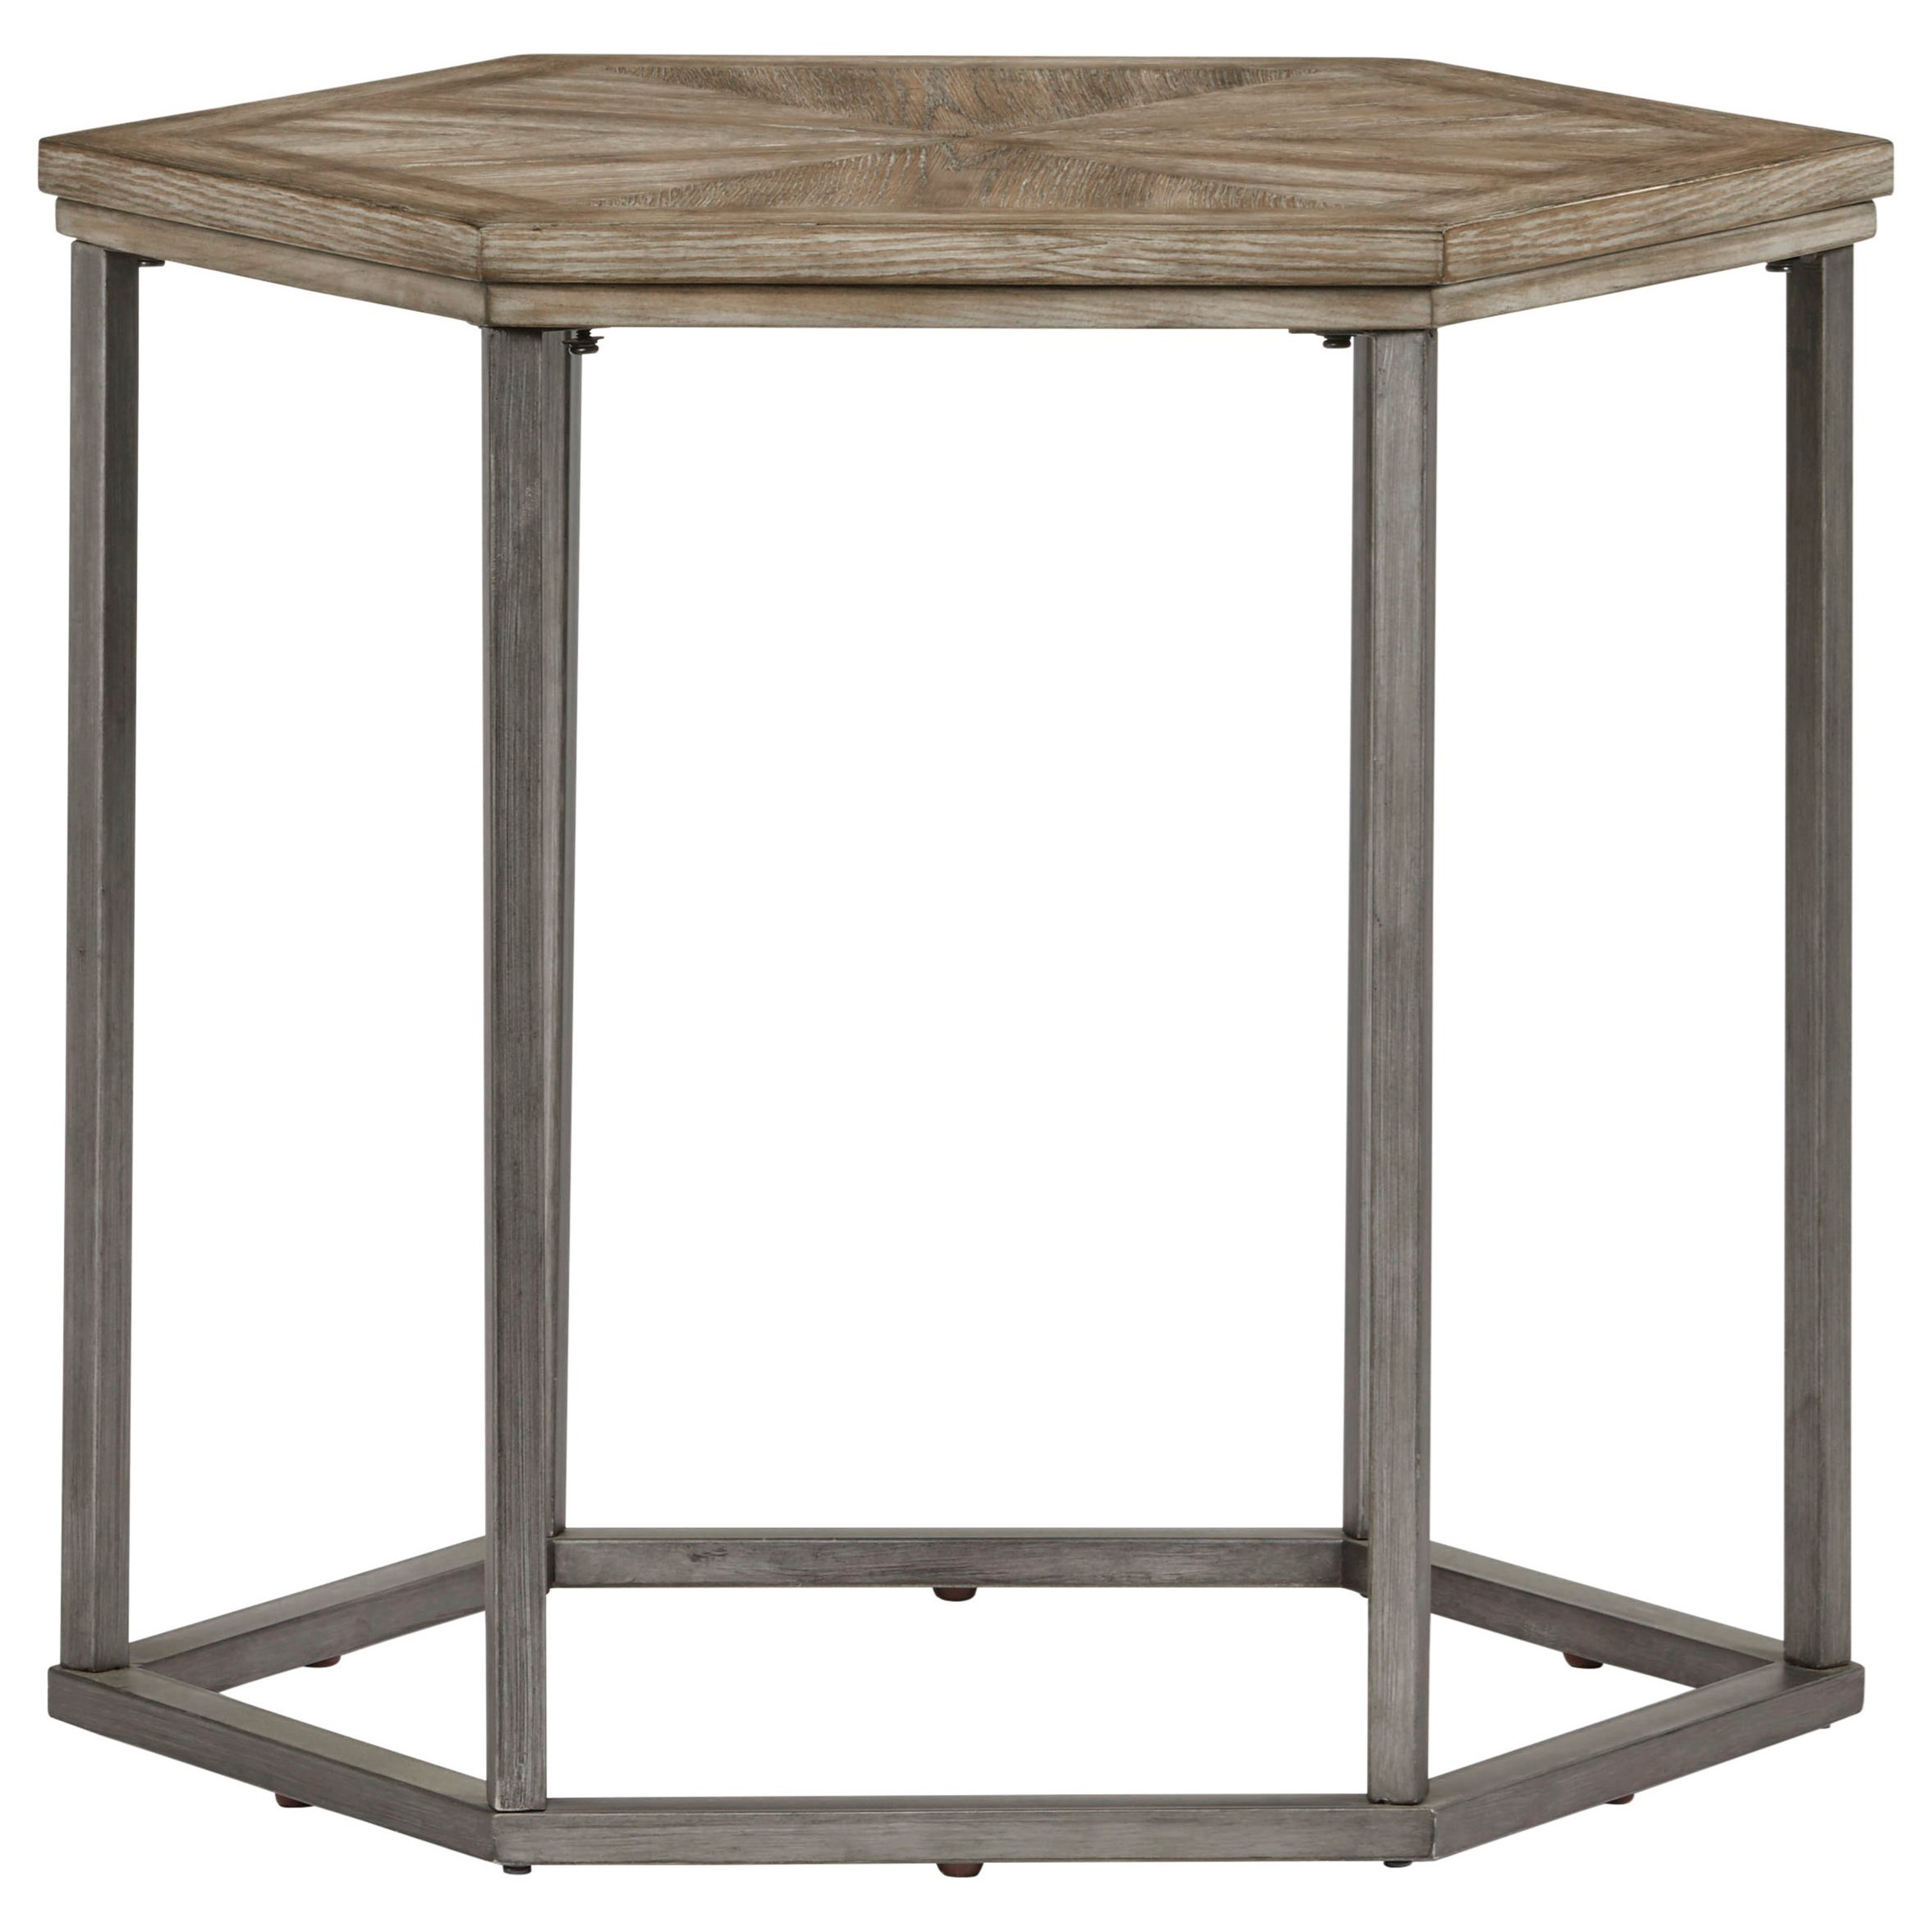 Adison Cove Hexagon End Table by Progressive Furniture at Simply Home by Lindy's